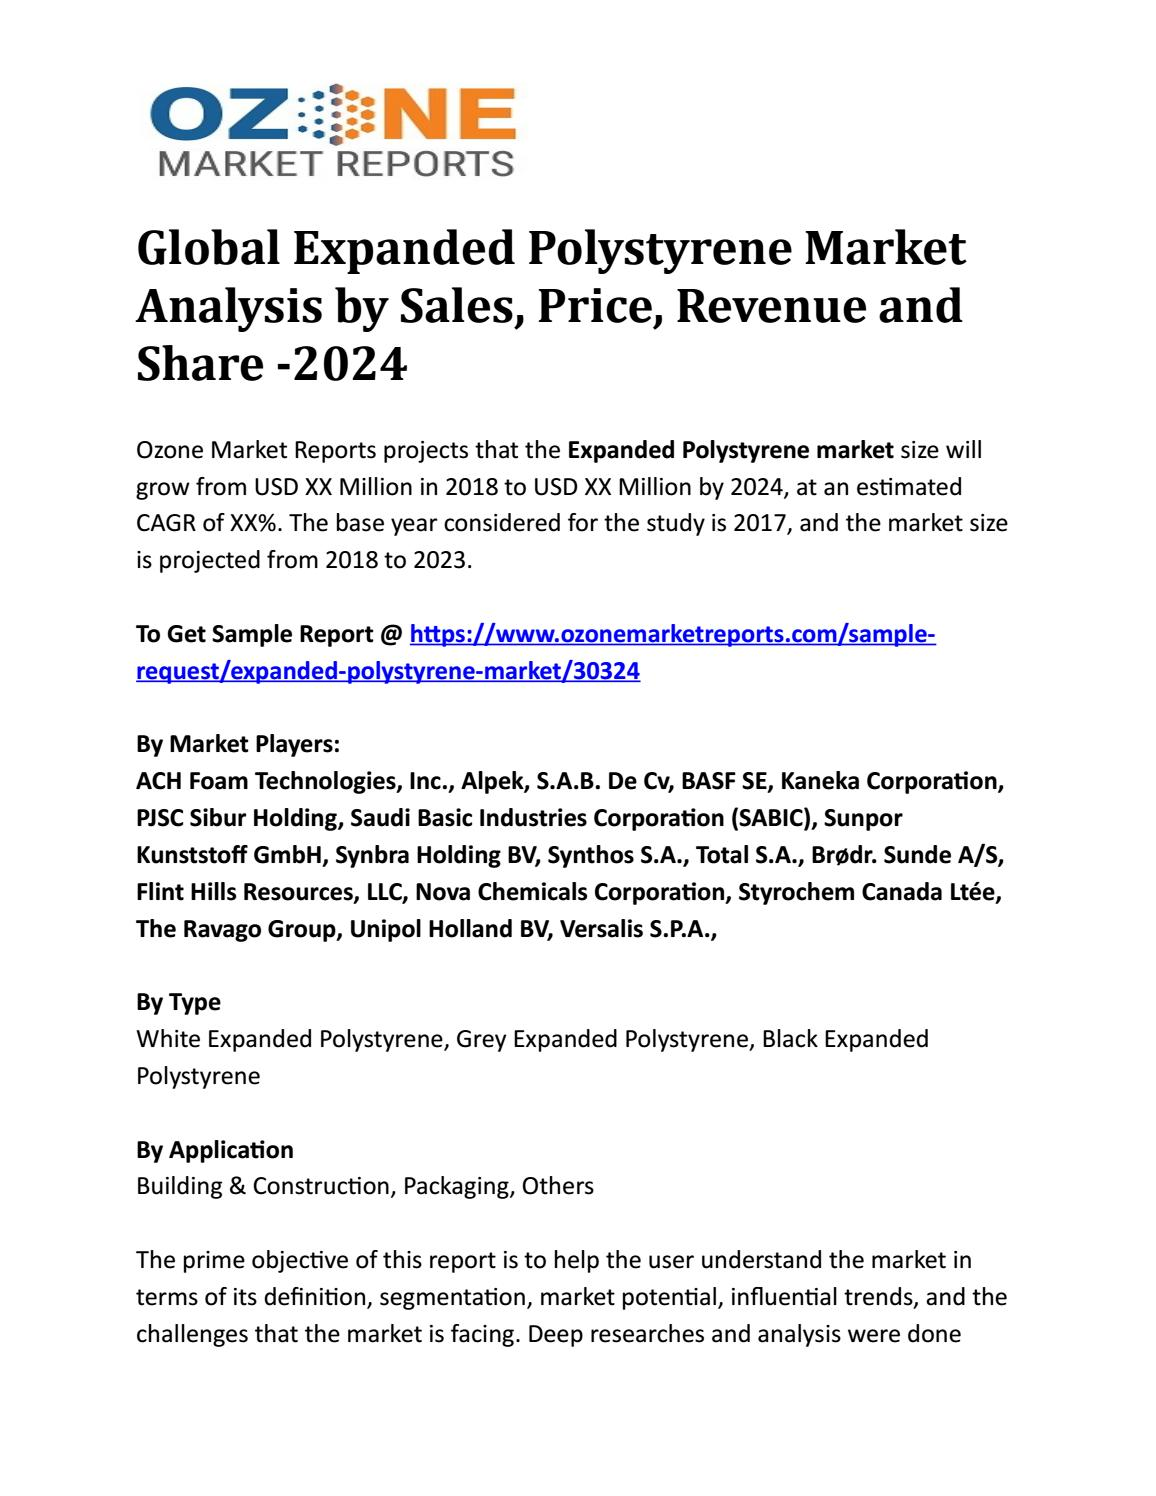 Global Expanded Polystyrene Market Analysis by Sales, Price